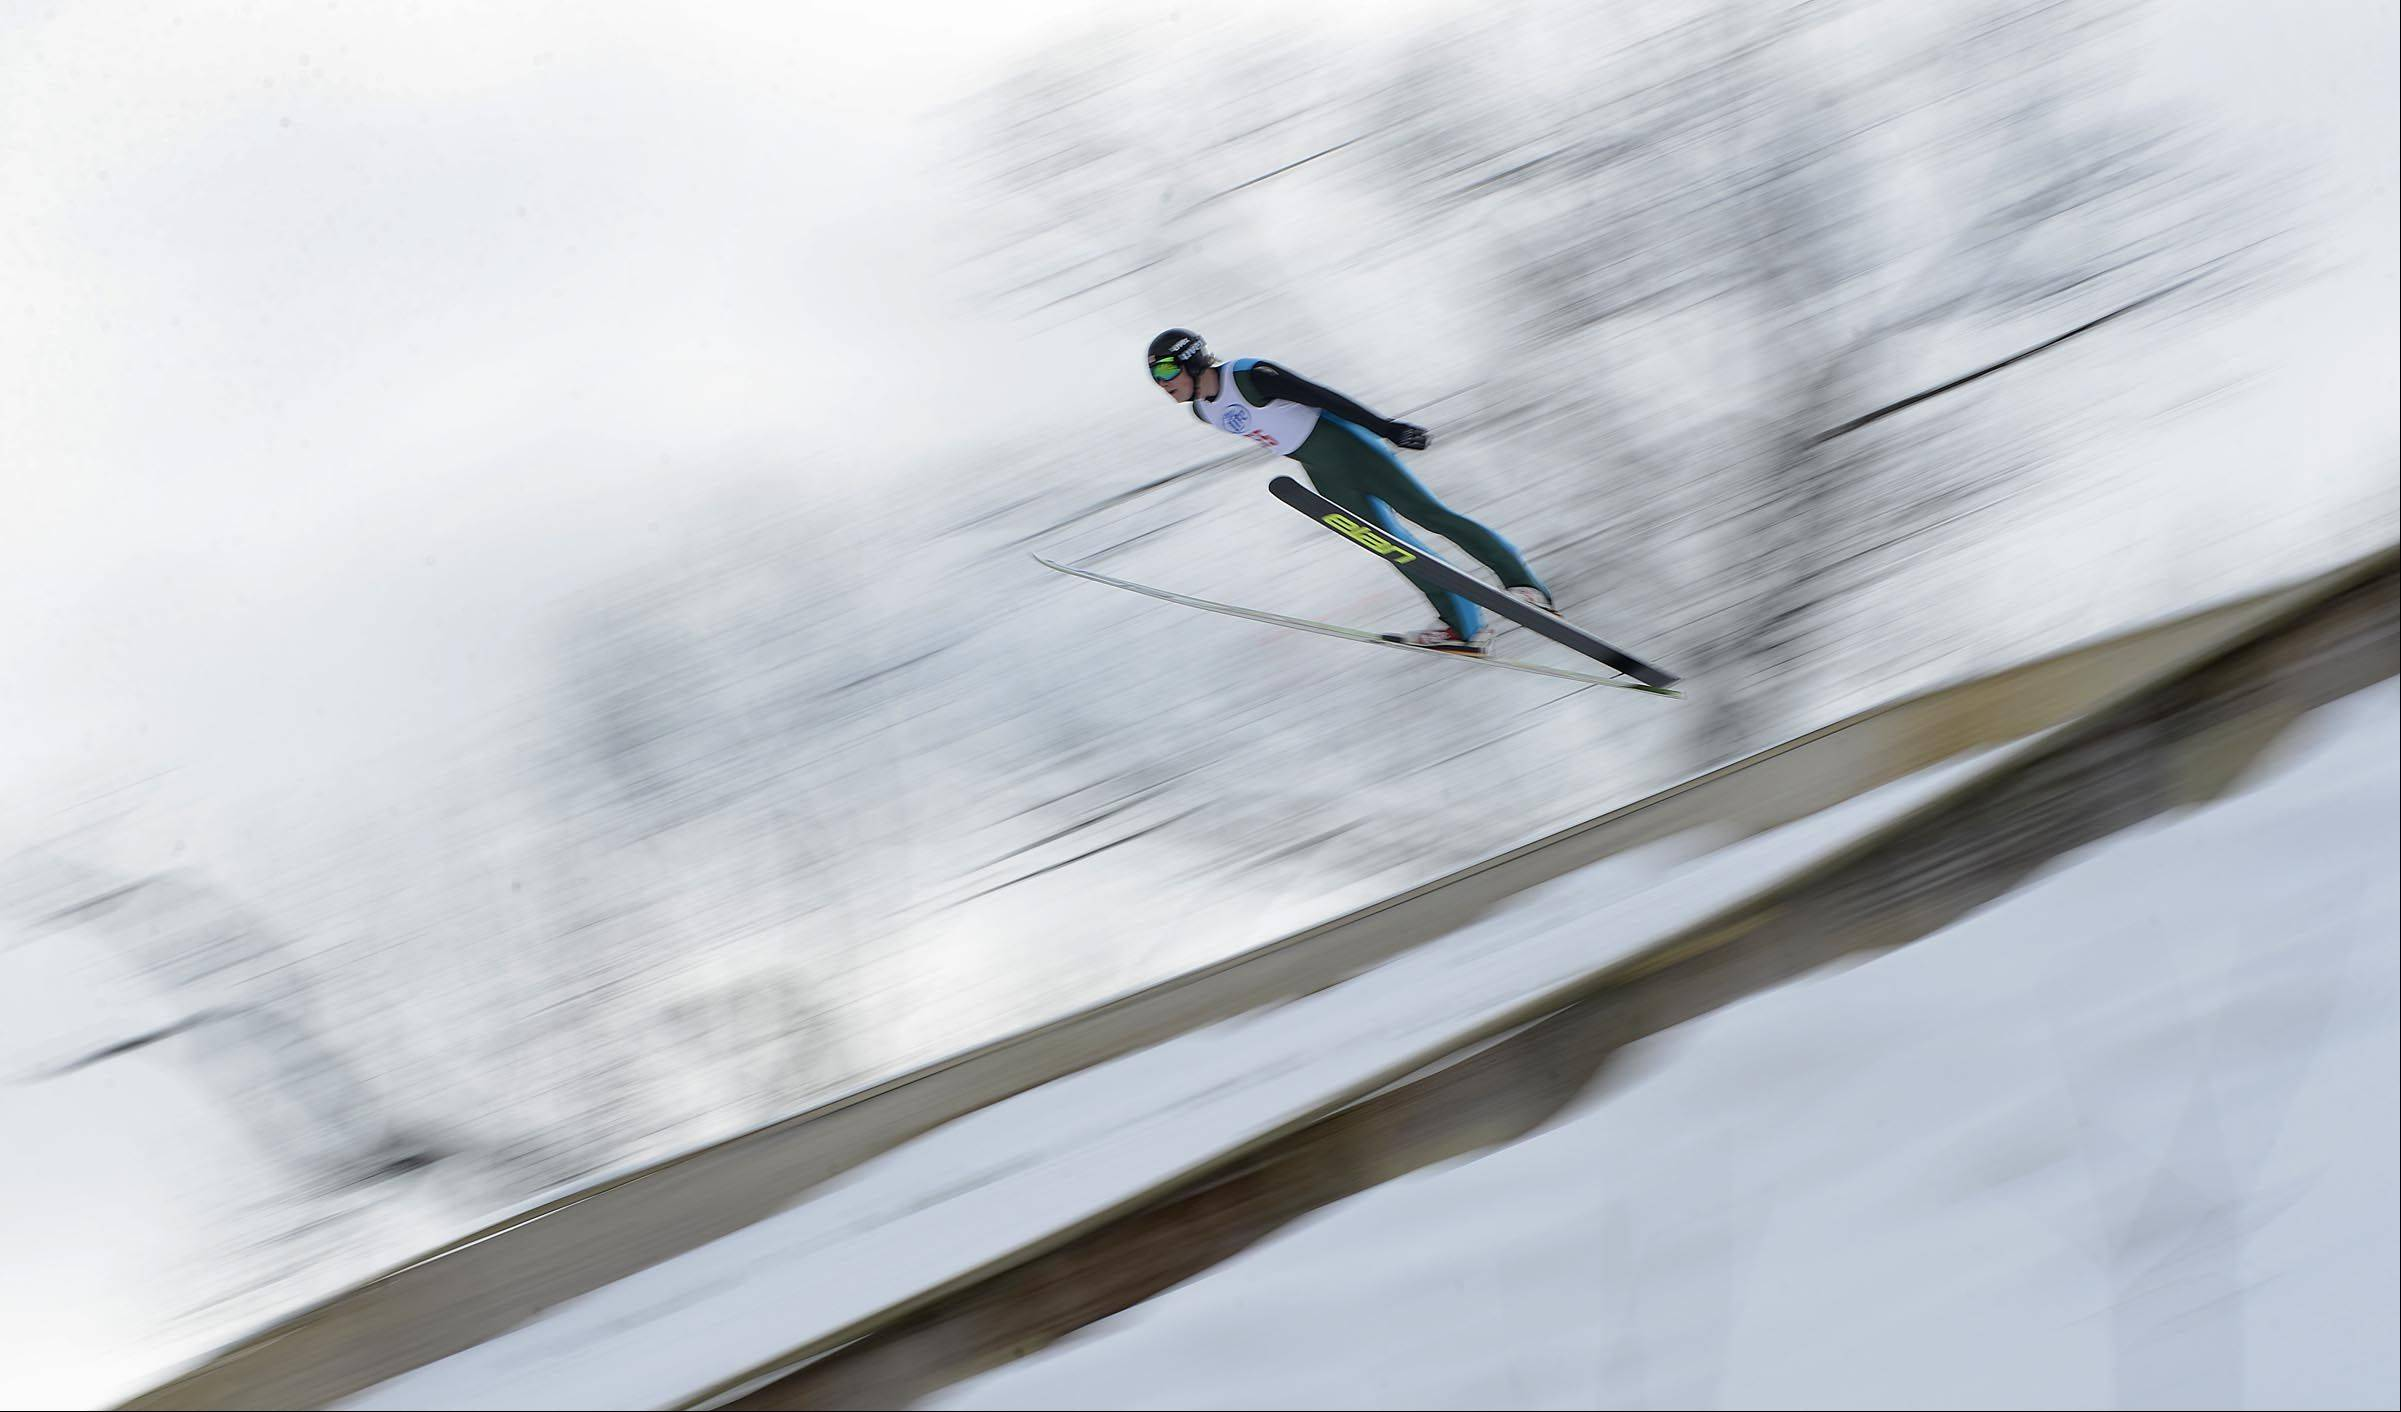 Brian Wallace, 20, of Minnesota, sails down the 70-meter competition hill Sunday at the Norge International Ski Jumping Tournament in Fox River Grove. More than 60 skiers competed in Sunday's event.